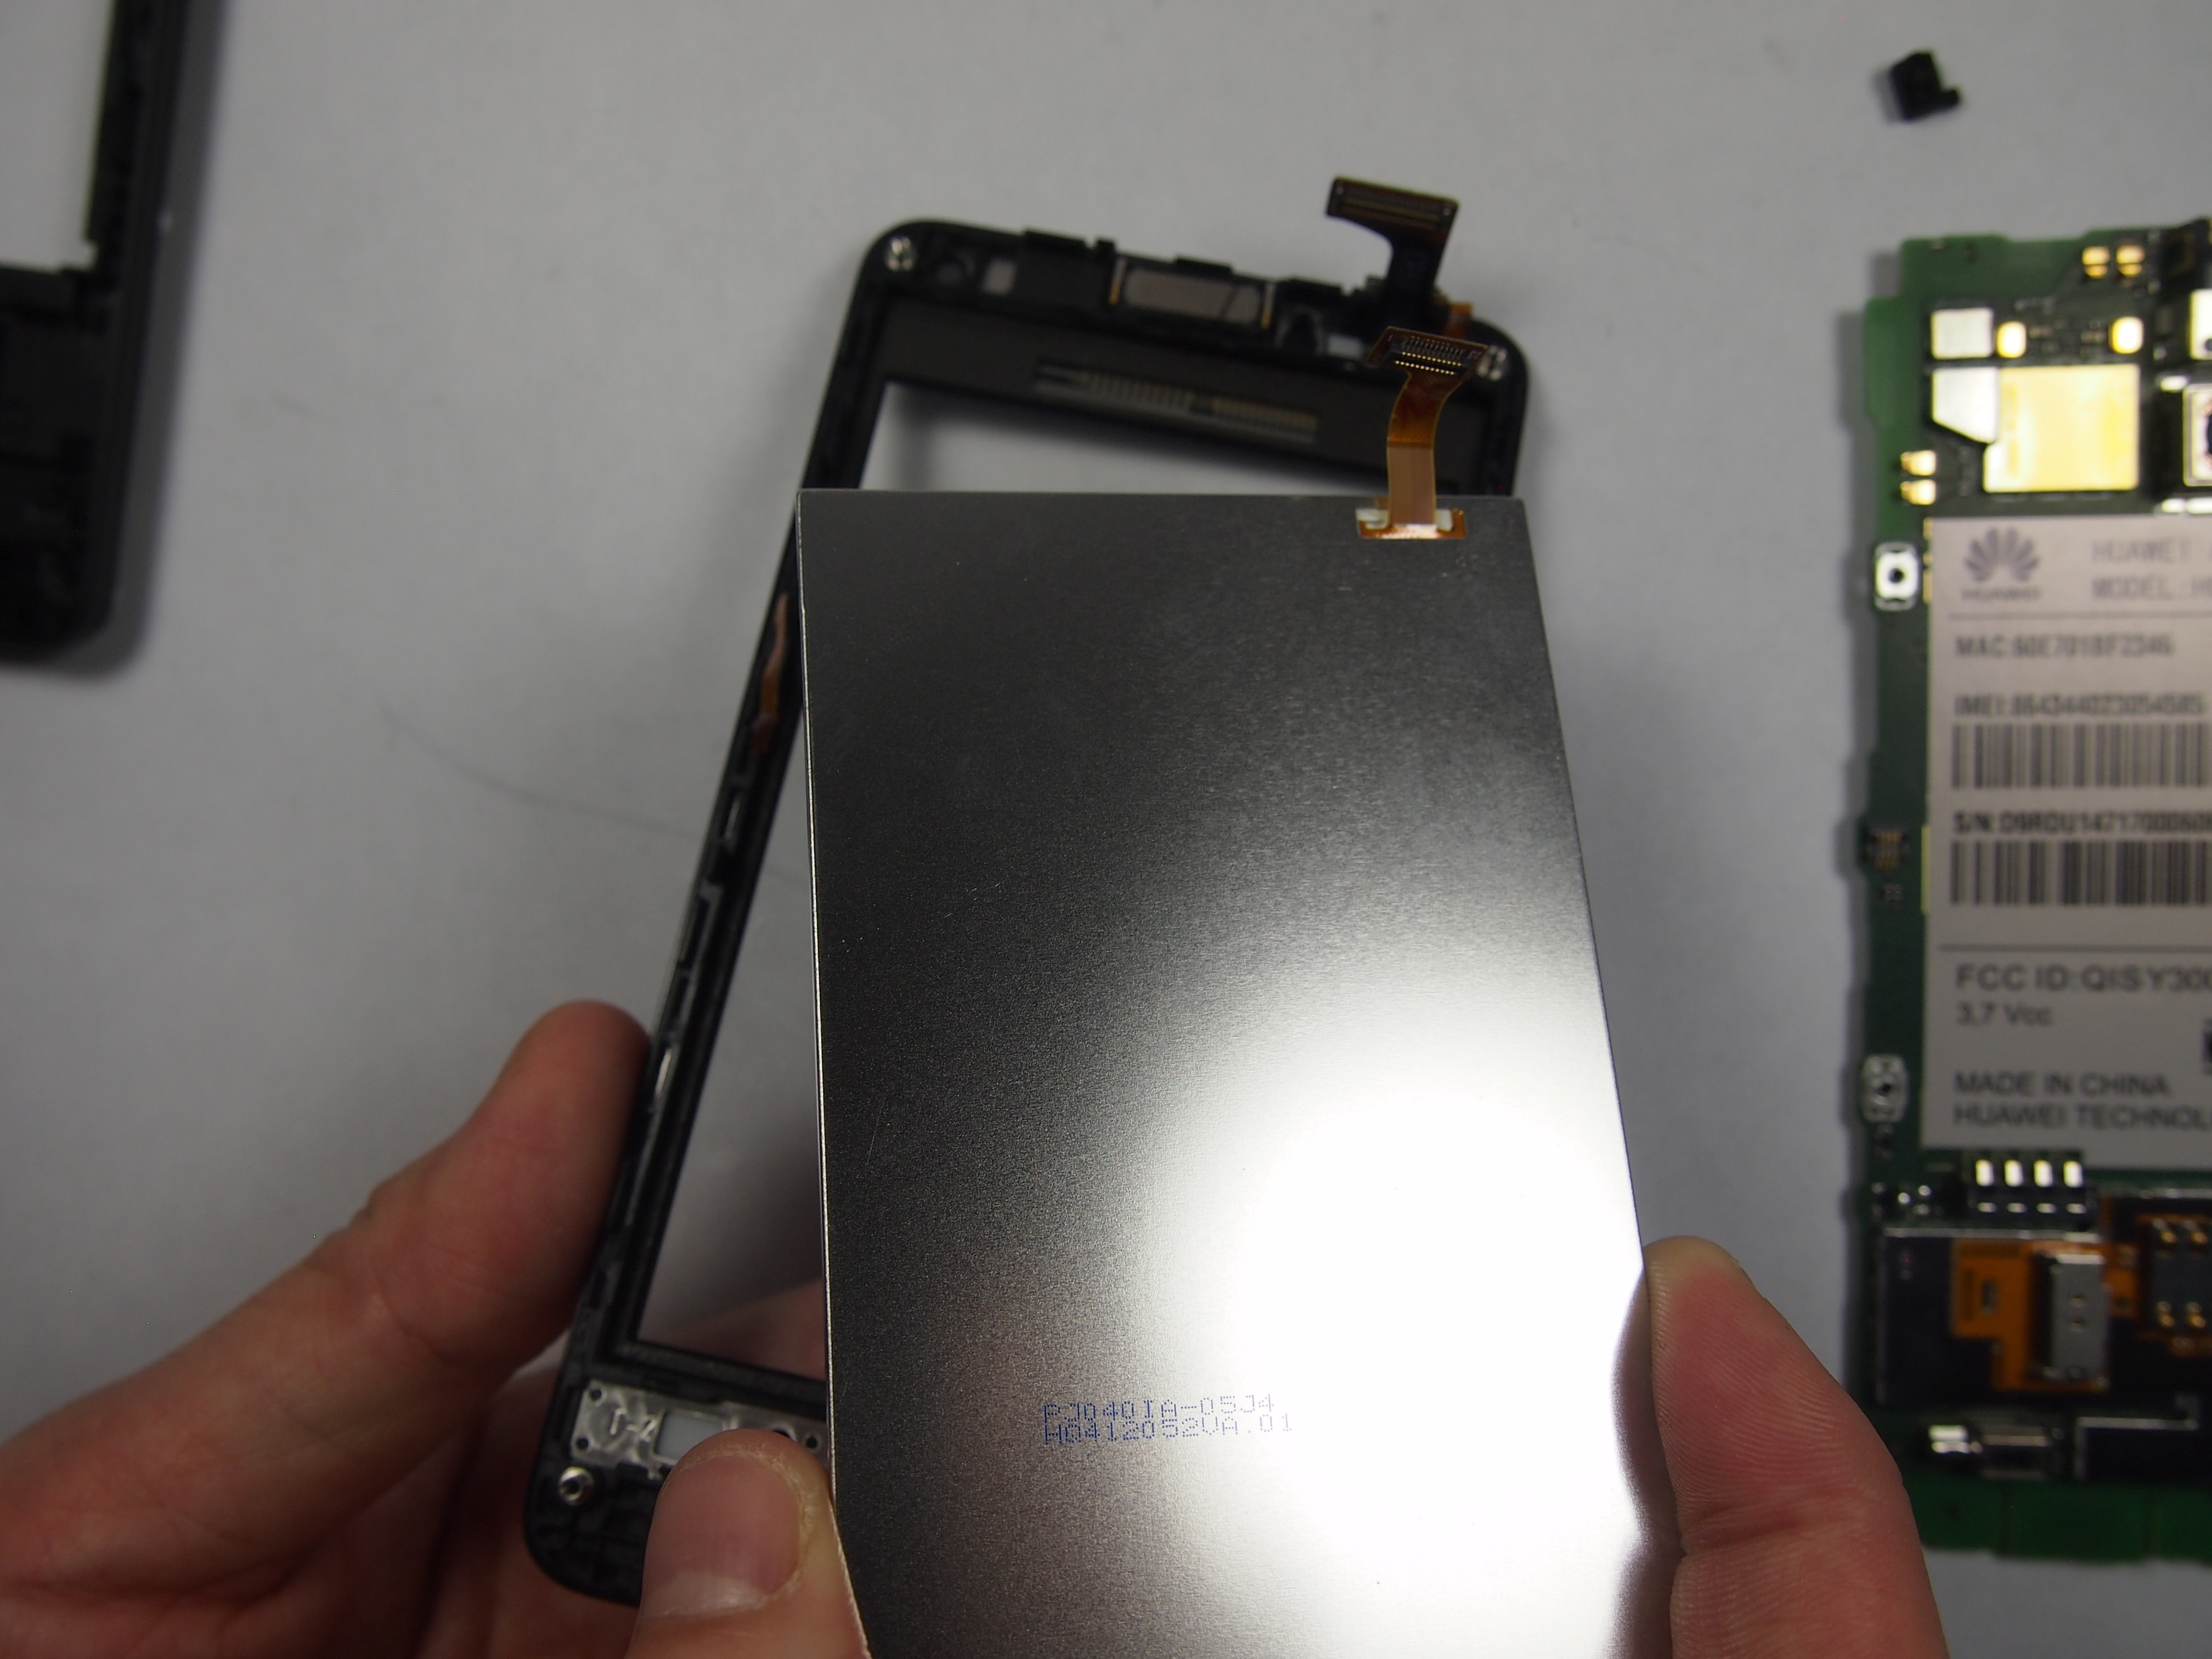 huawei y300 lcd screen replacement ifixit repair guide rh ifixit com